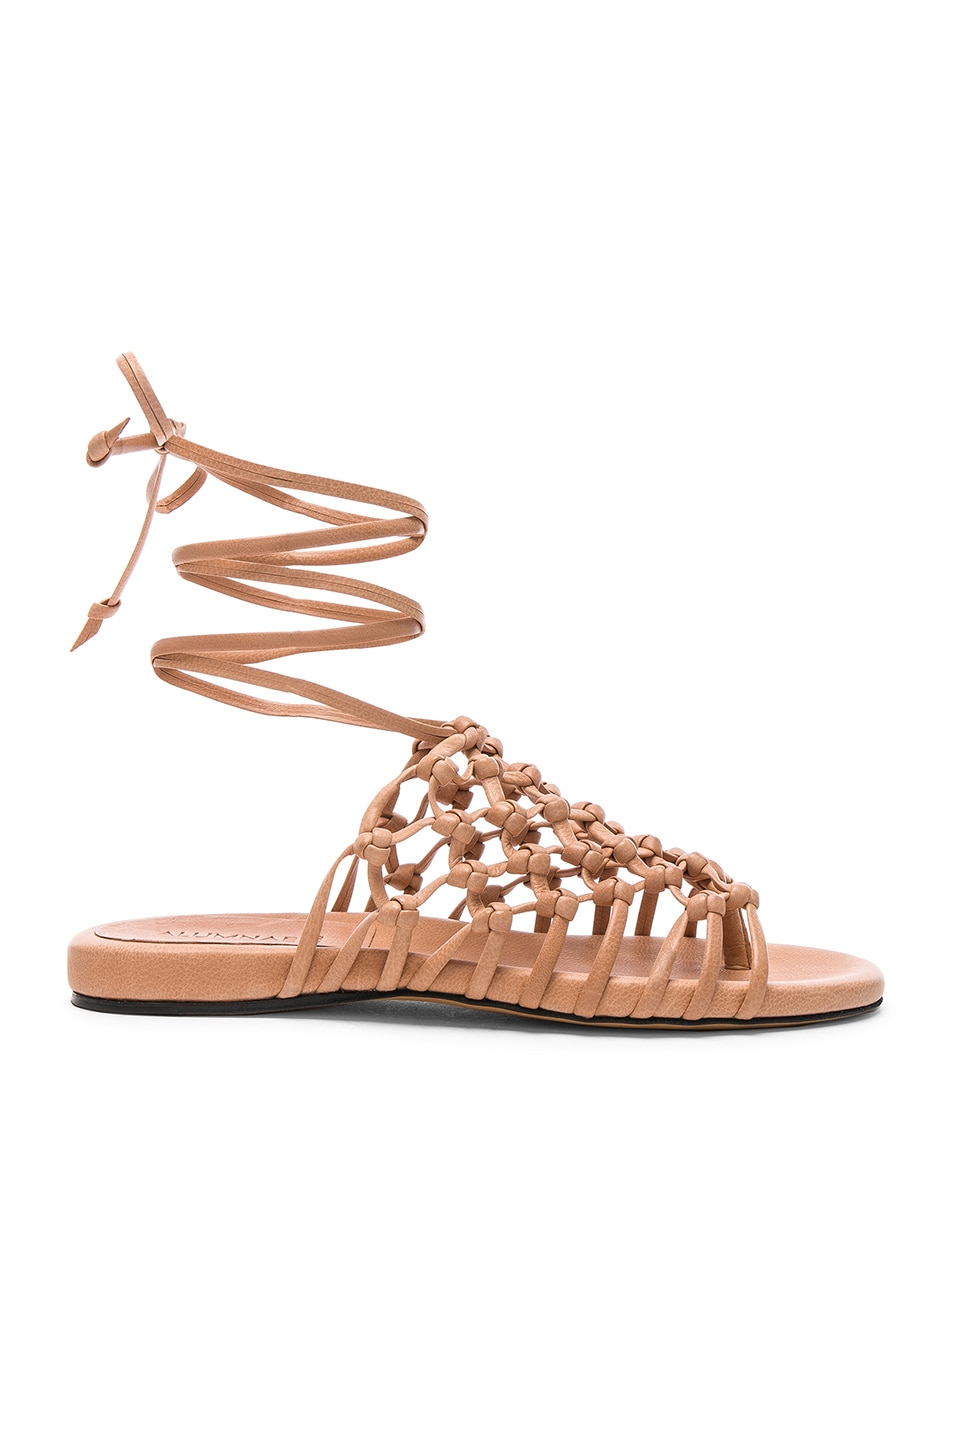 62fbb92a3e5 Image 1 of ALUMNAE Knotted Leather Ankle Wrap Sandals in Blush